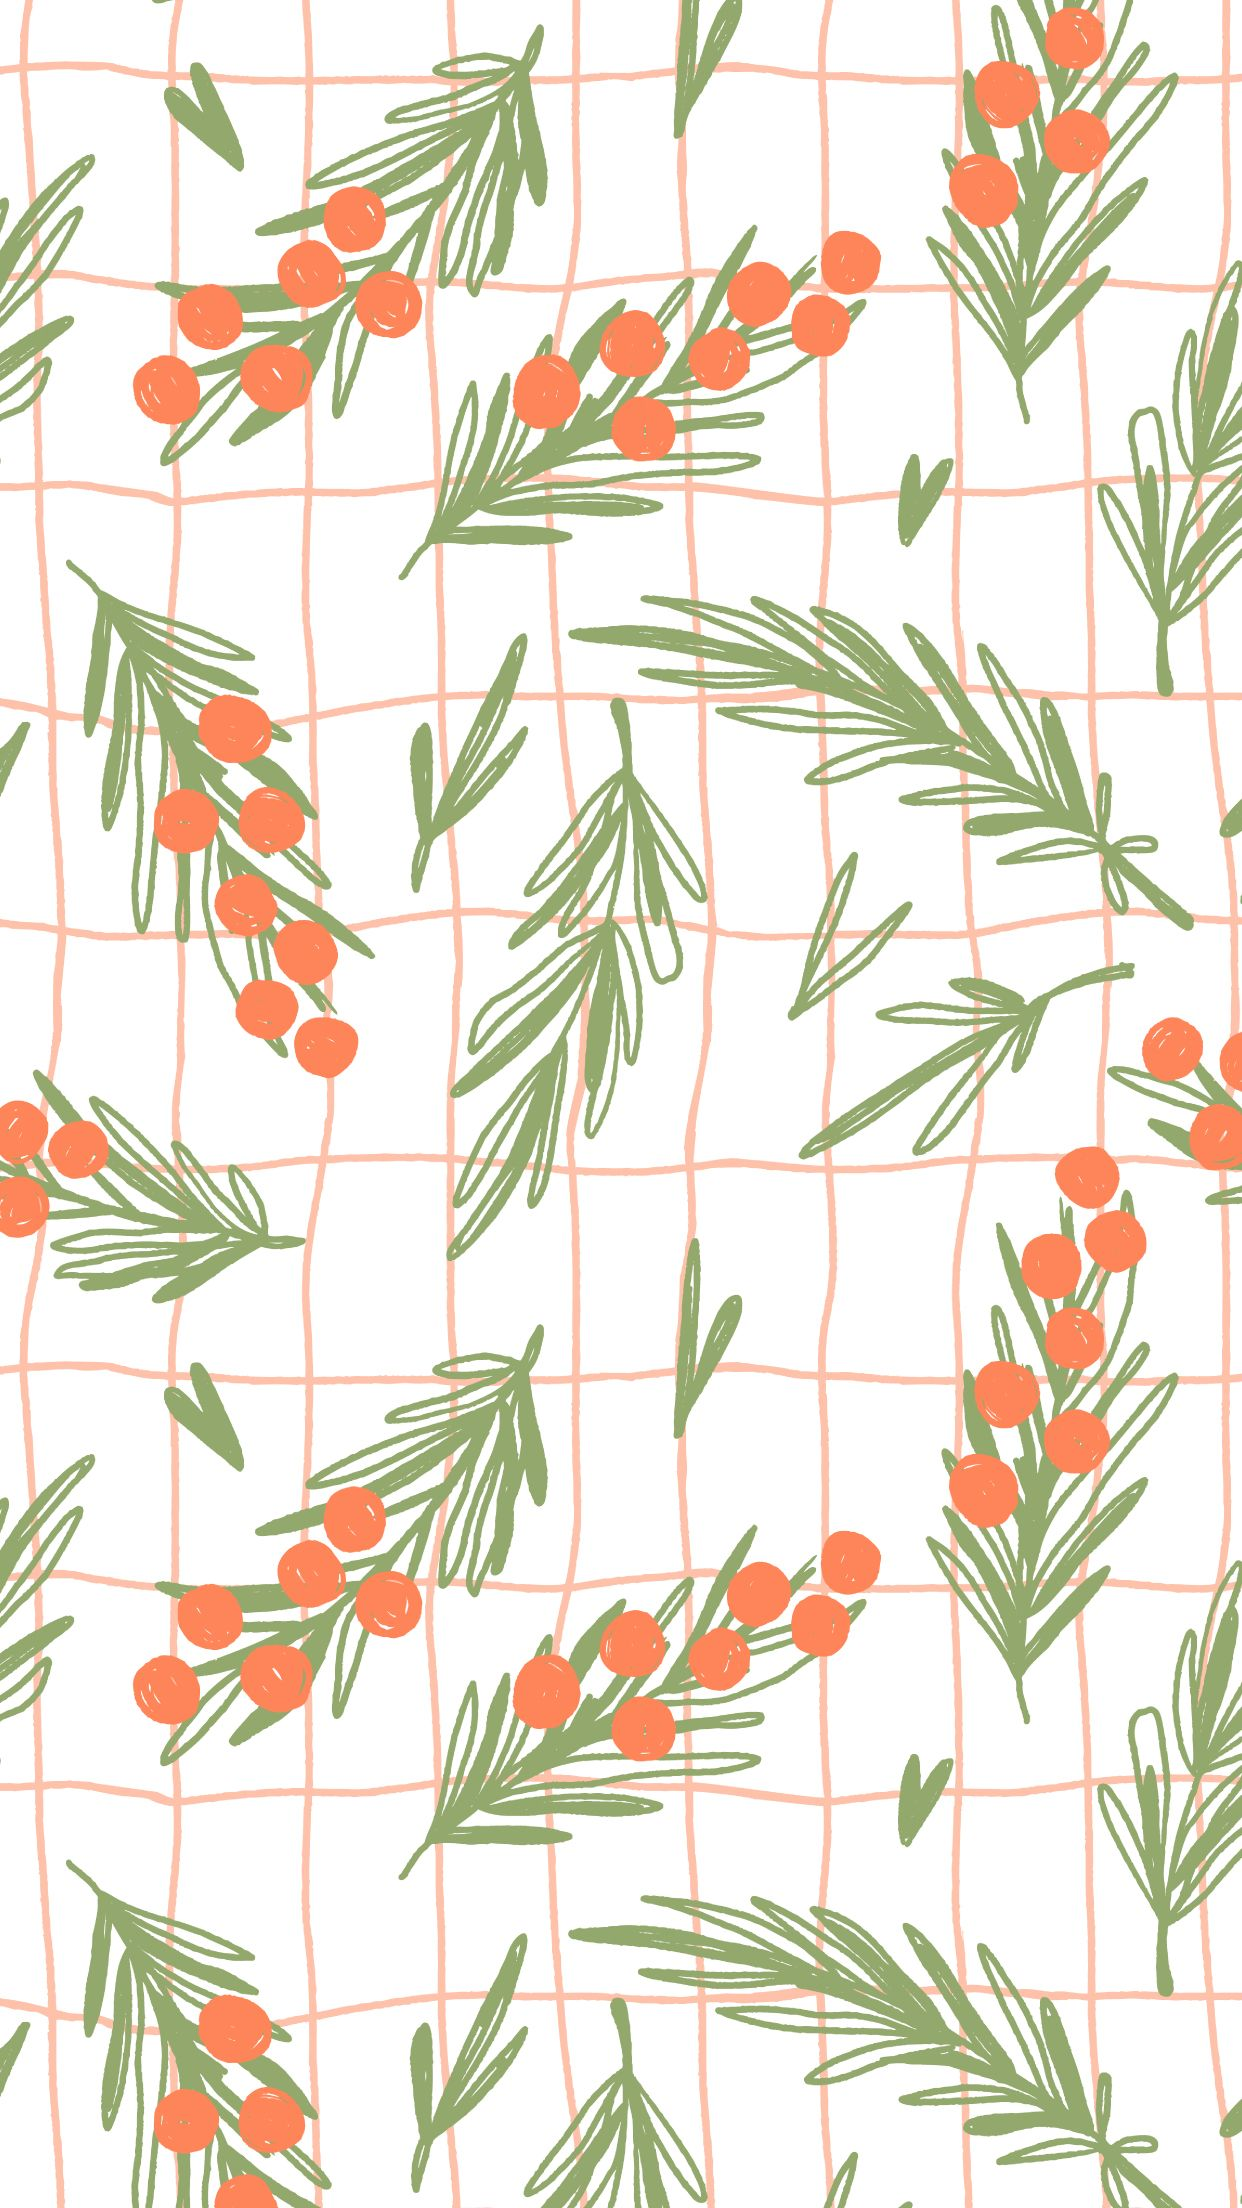 Colorful Fabrics Digitally Printed By Spoonflower Green Leaves